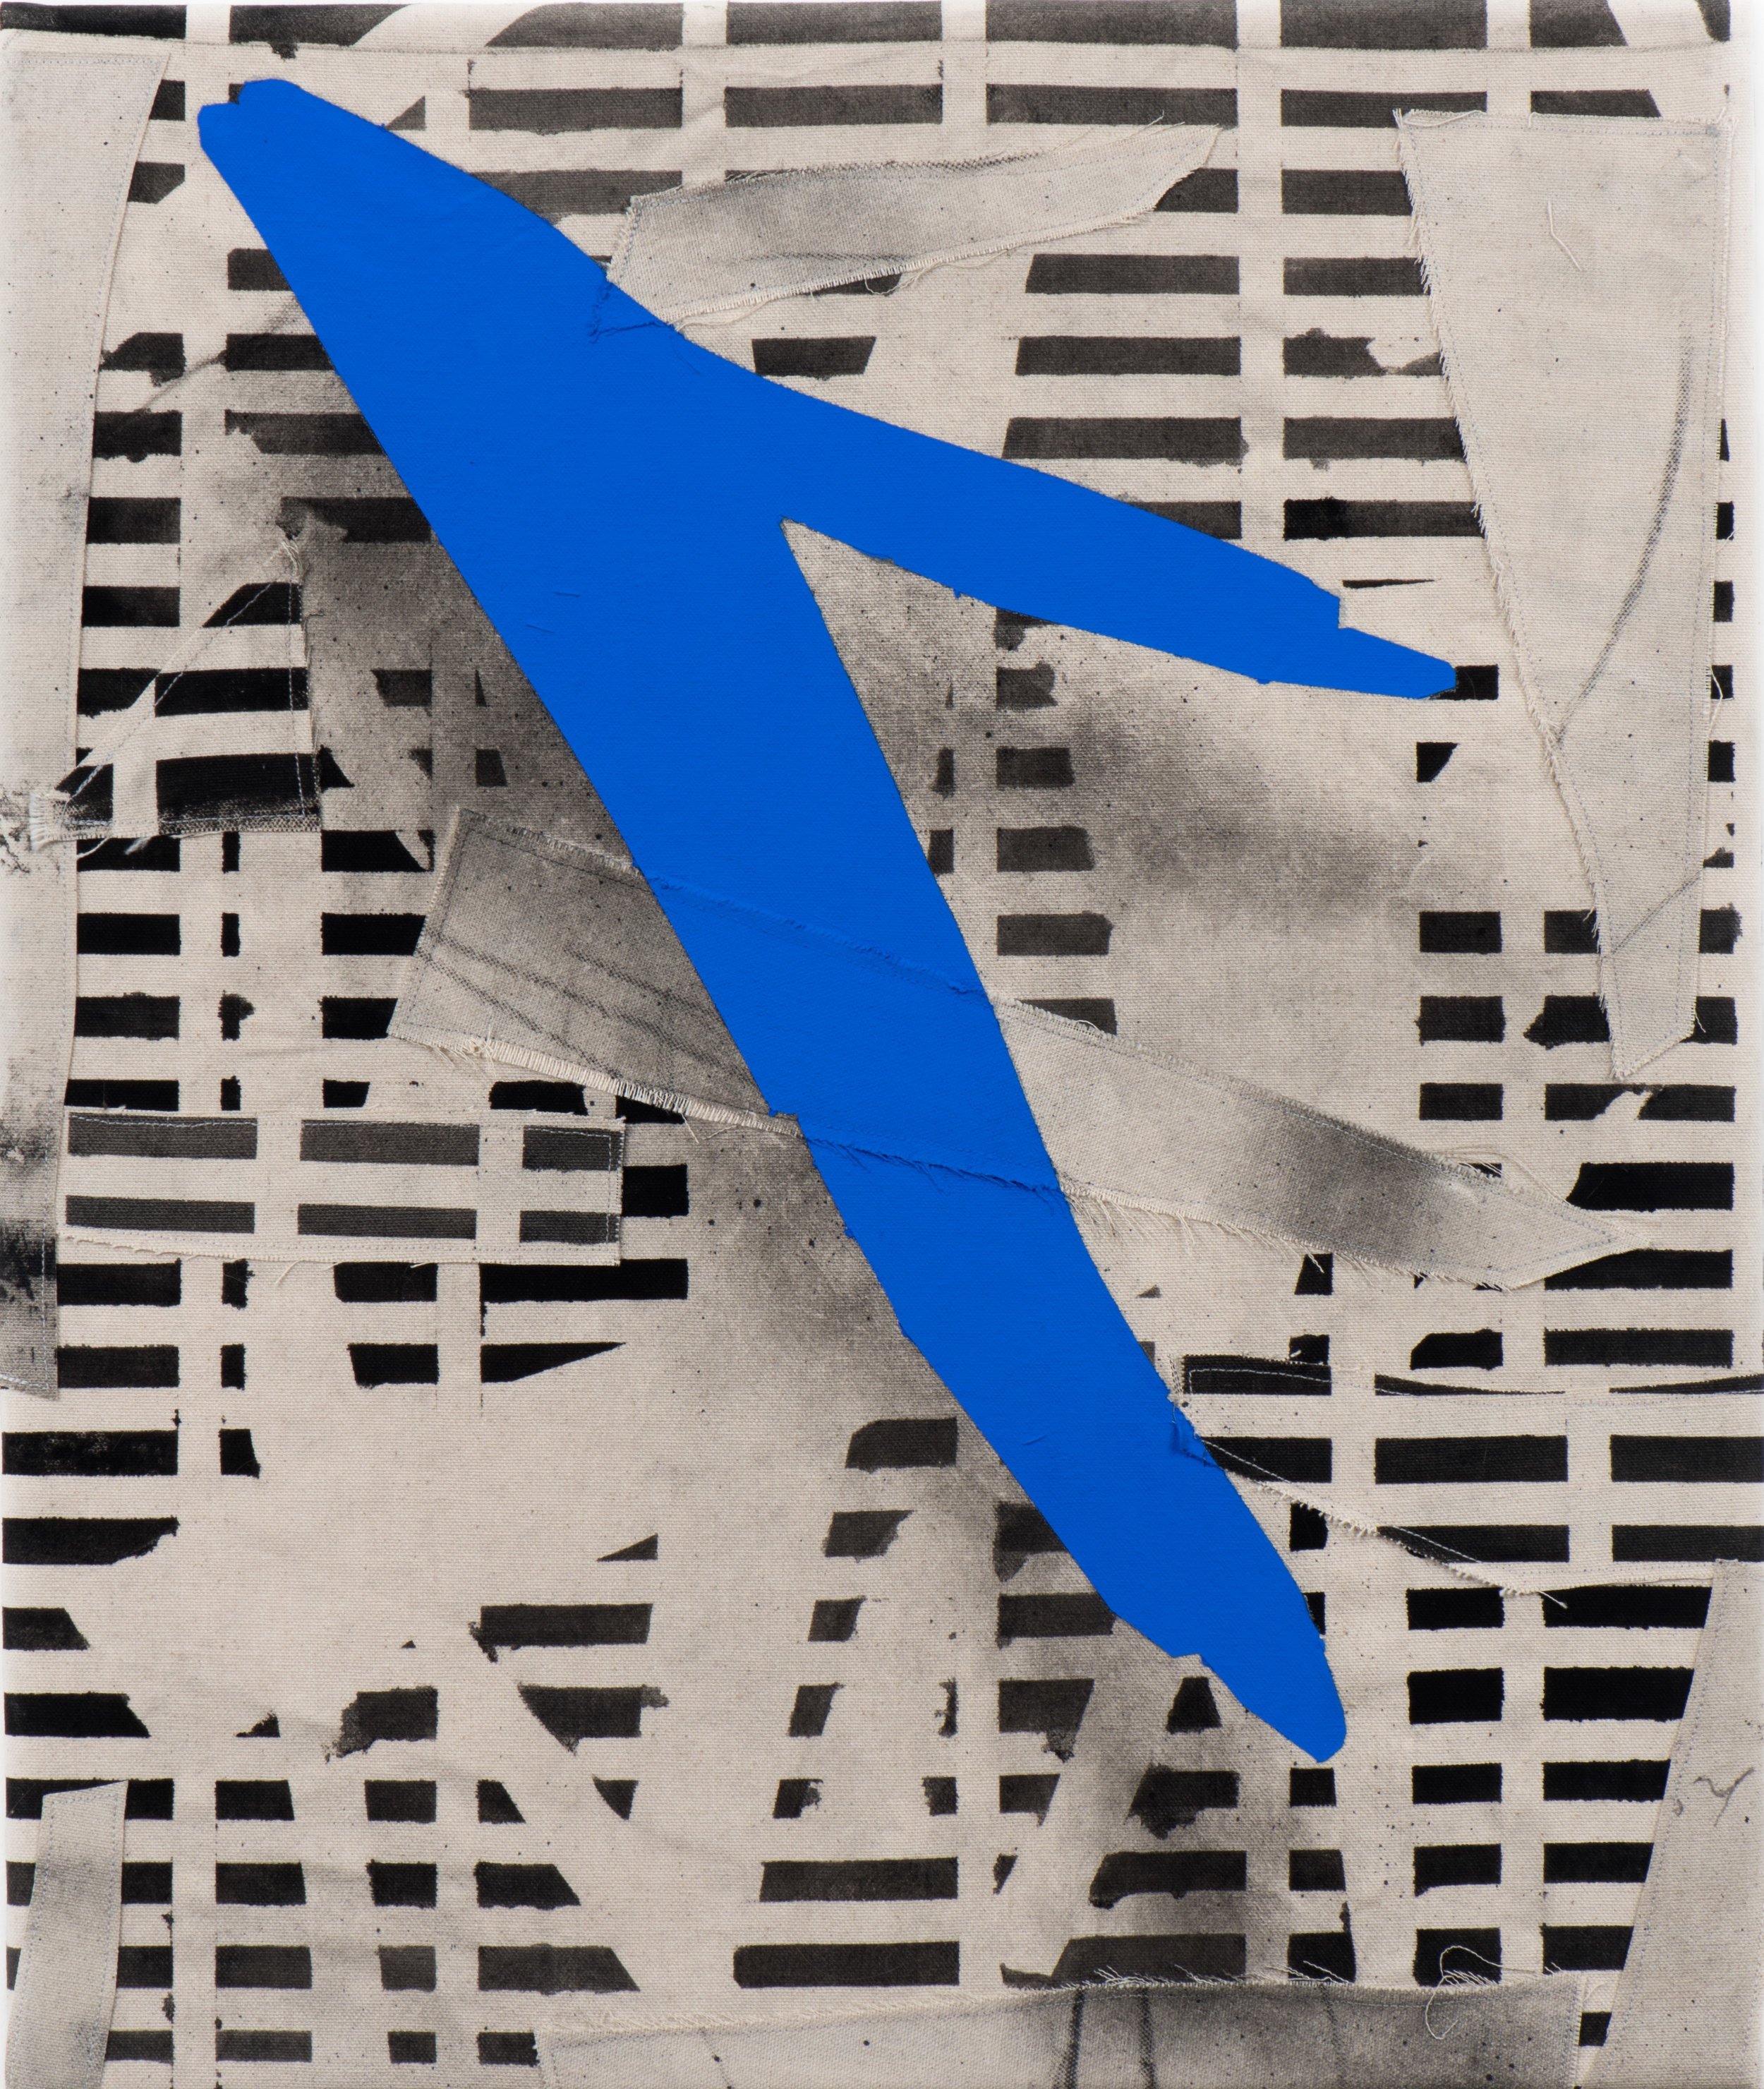 Christopher Iseri  Flying V , 2018 Flashe, acrylic, graphite, and sewn canvas on canvas 20 x 24 inches